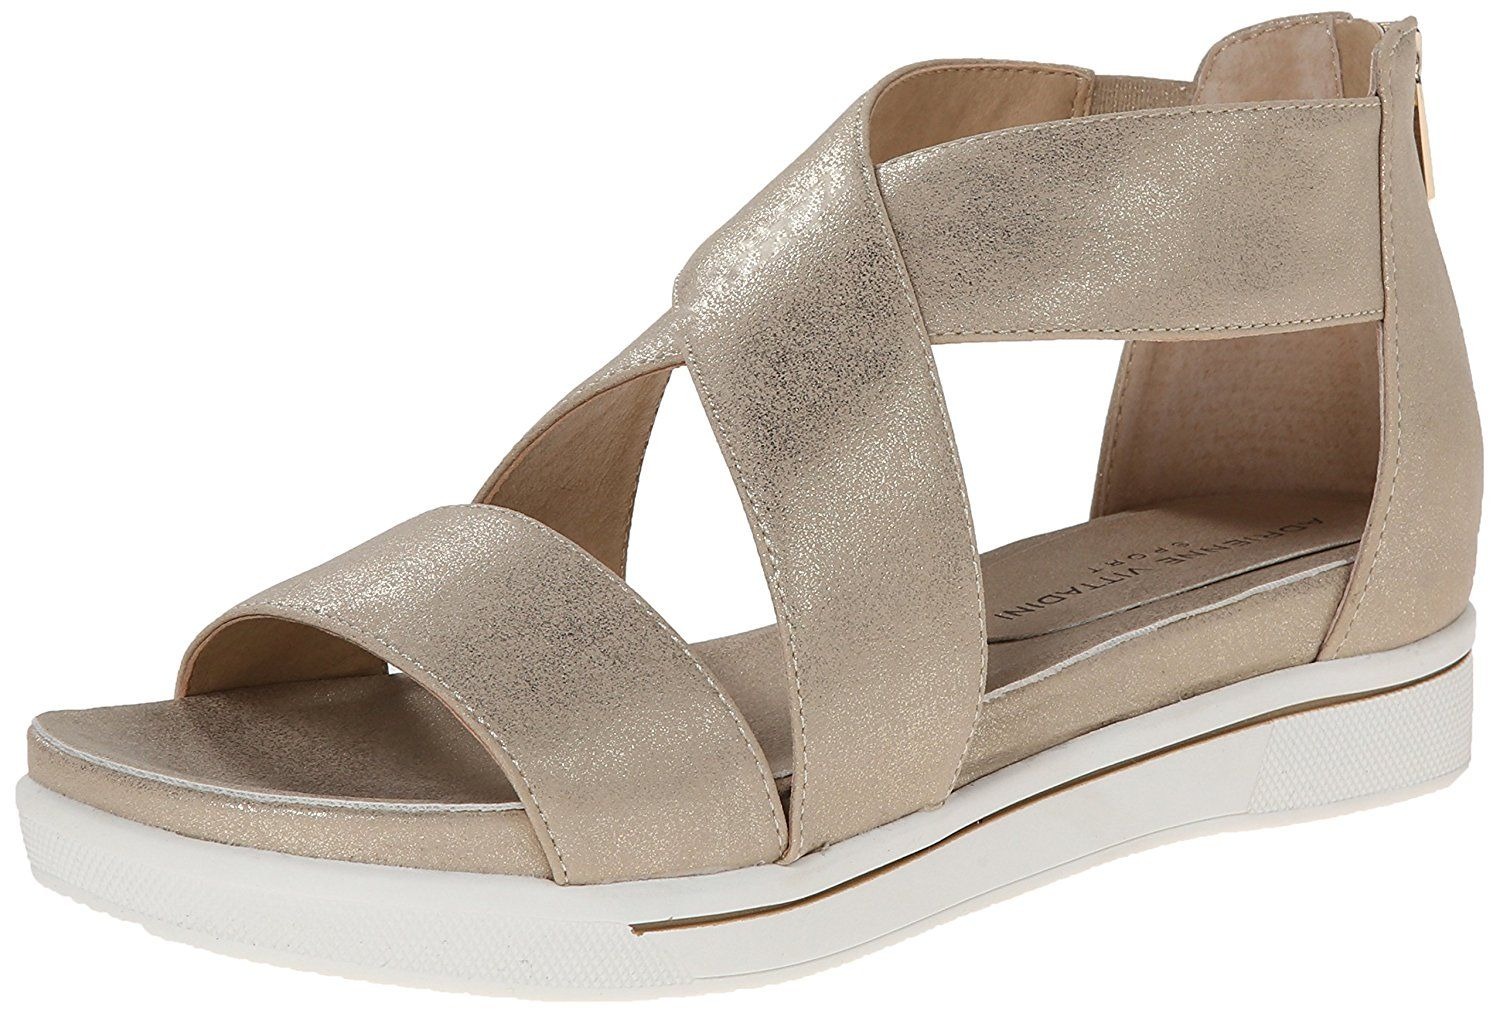 9e1f733fde9 Adrienne Vittadini Footwear Women s Claud Flat Sandal -- Wow! I love this.  Check it out now!   Gladiator sandals